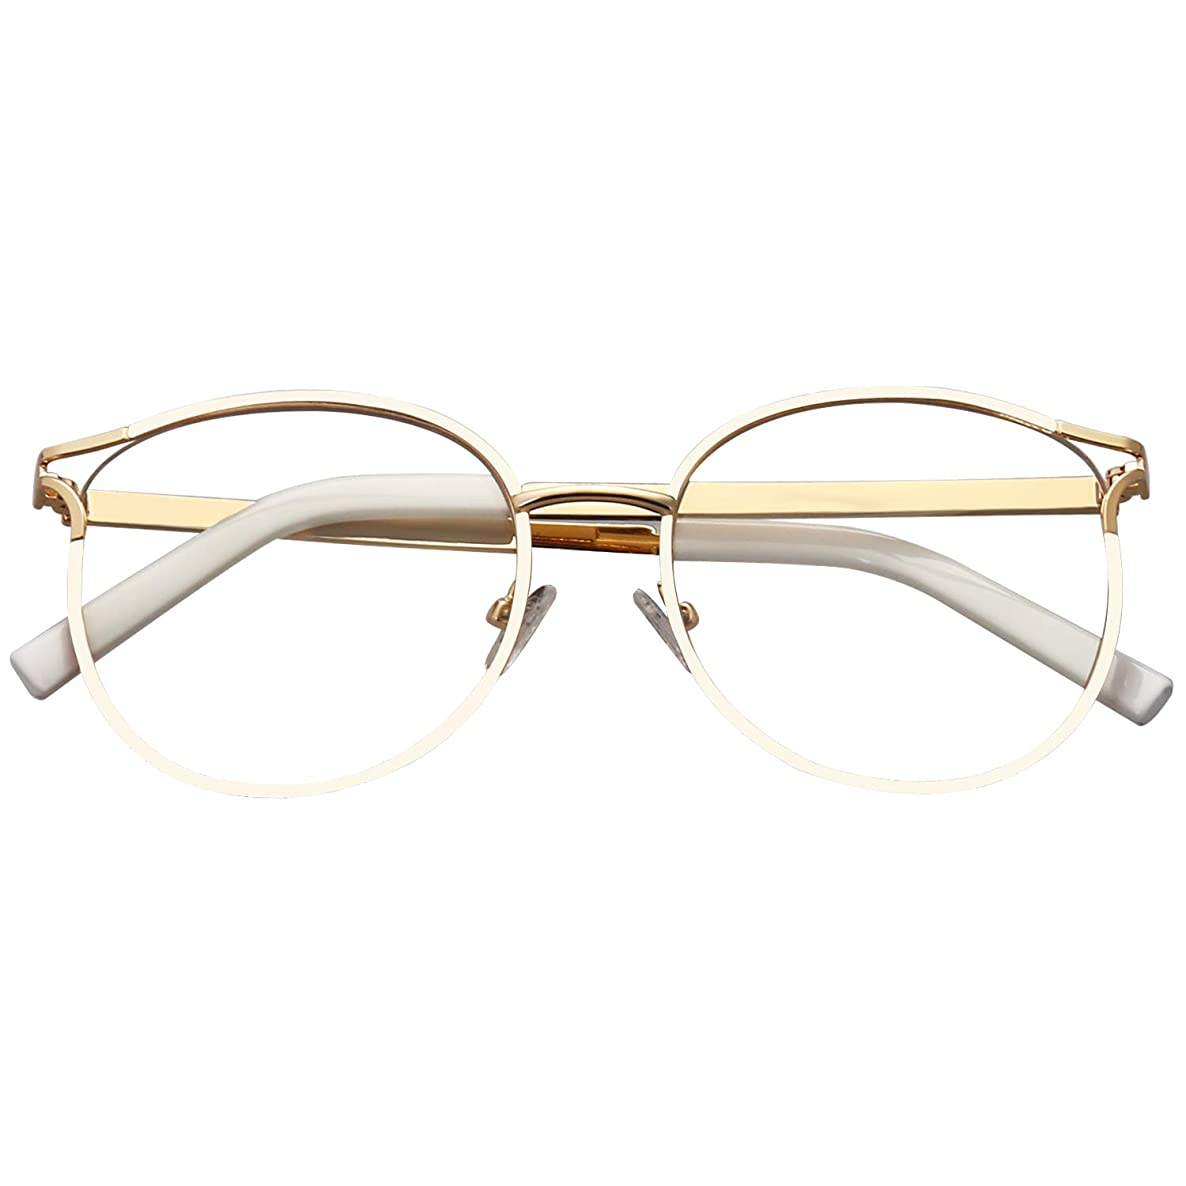 SOJOS Blue Light Blocking Glasses Round Eyeglasses Frame Anti Blue Ray Computer Game Glasses SJ5042